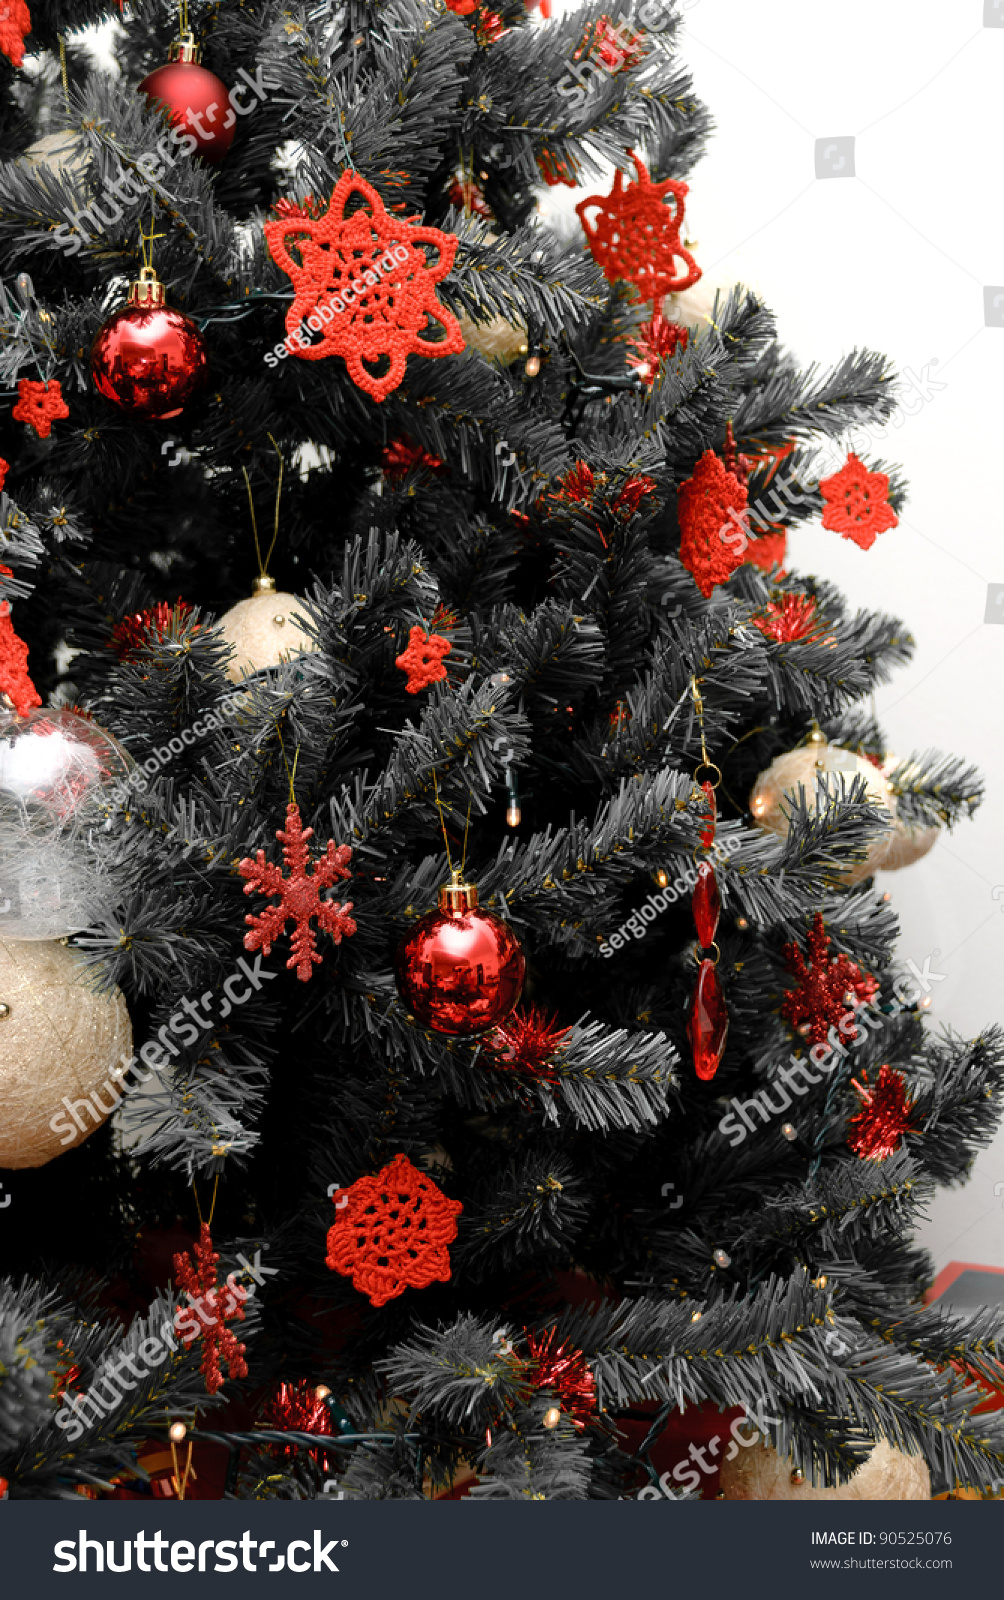 Christmas Tree In Black And White With Red Decorations Stock Photo 90525076 : Shutterstock